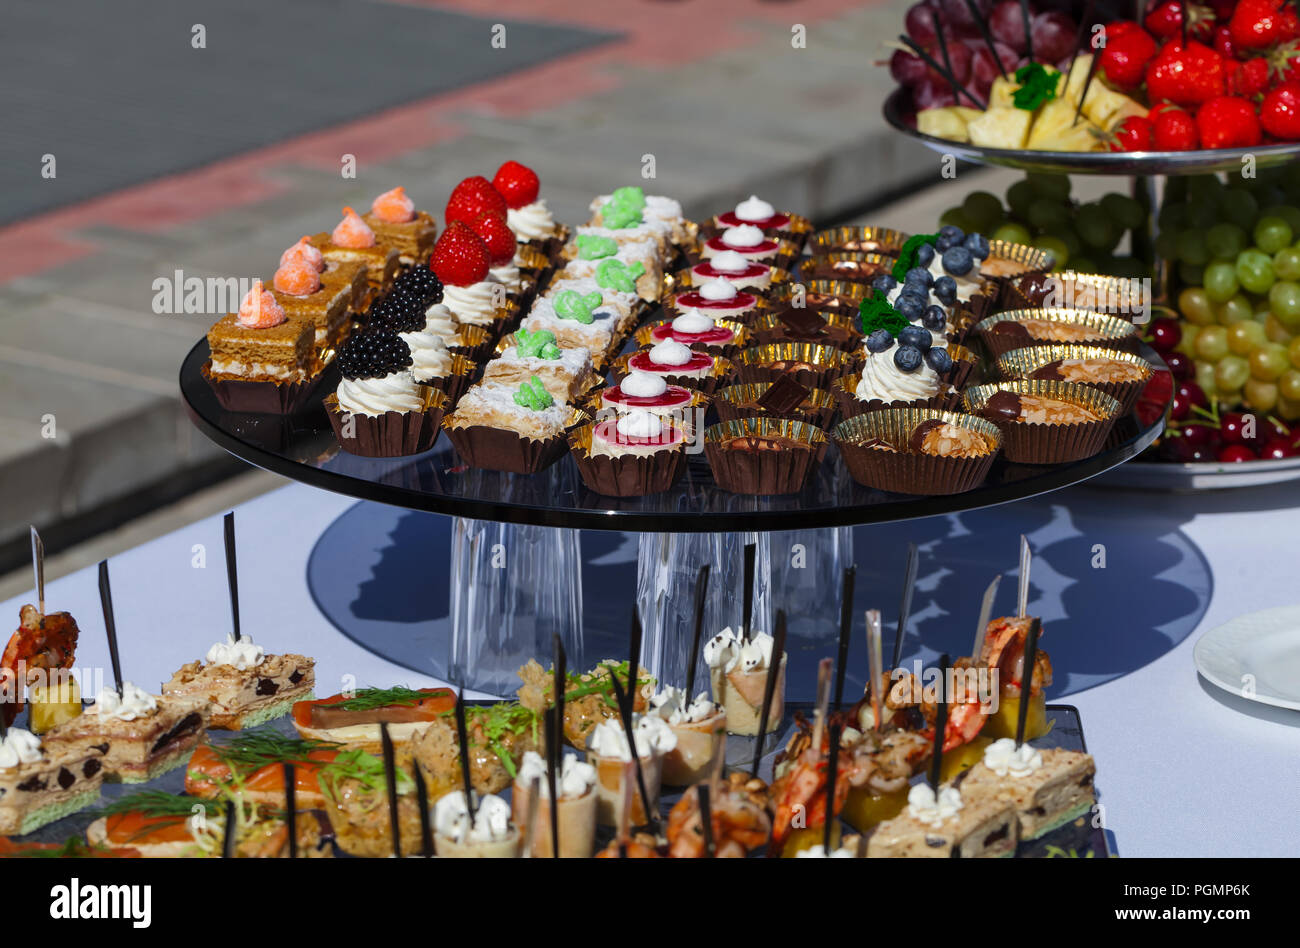 Catering service . sandwiches meat, fish, vegetable canapes on a festive wedding table outdoor - Stock Image